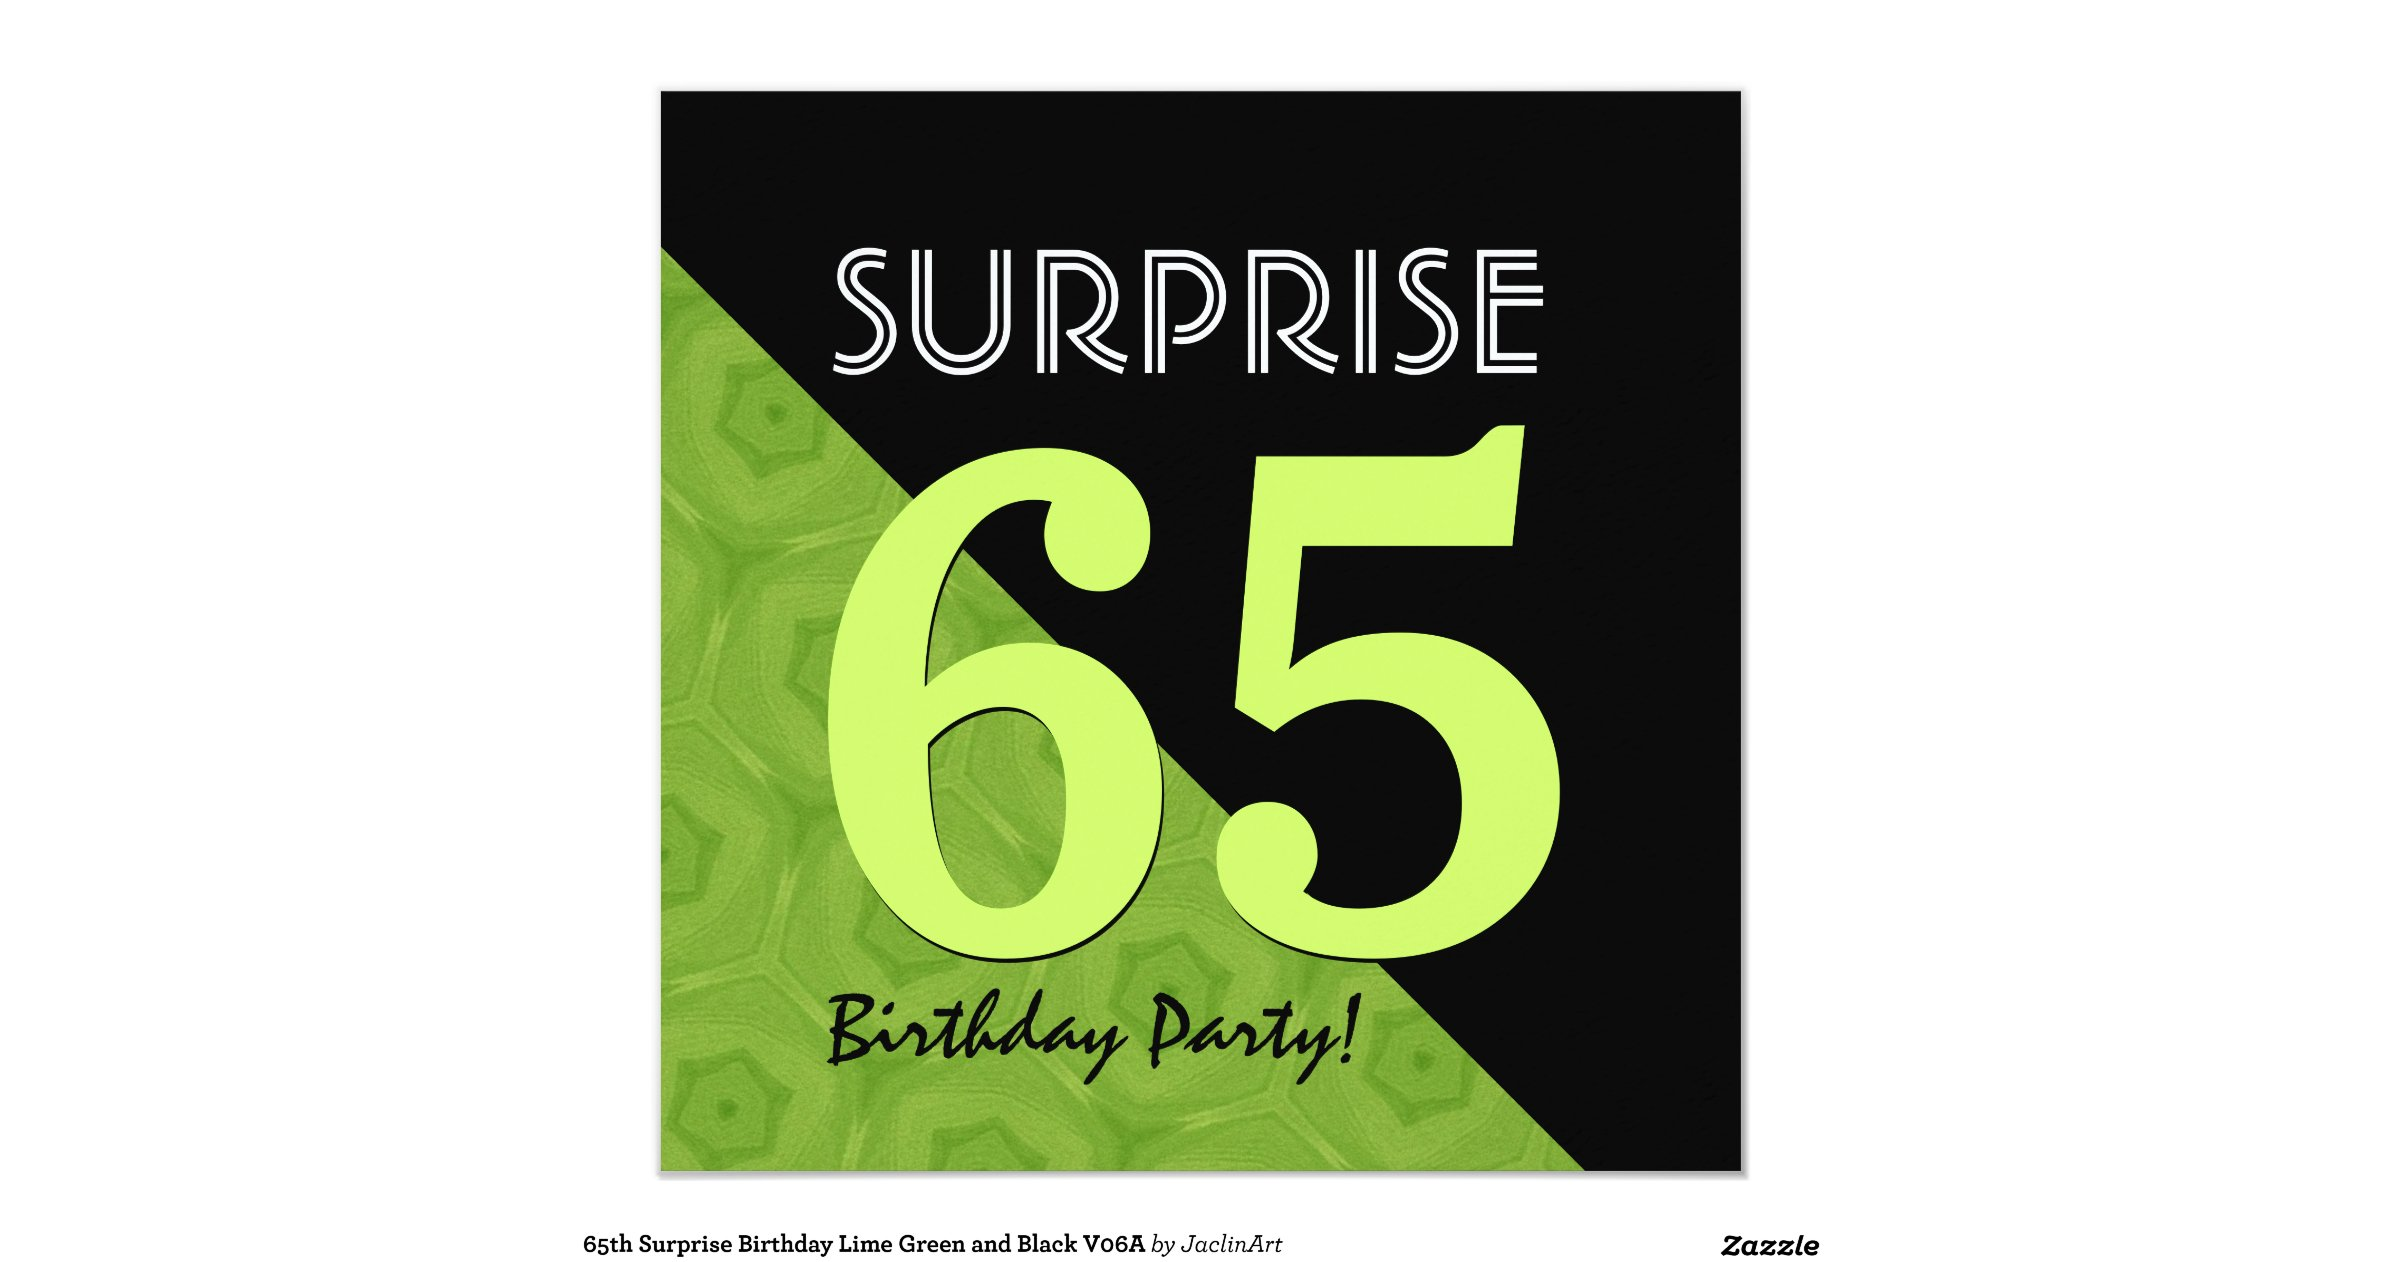 Surprise 65th Birthday Party Invitation Secret SAVE Lime Green And Black V06a